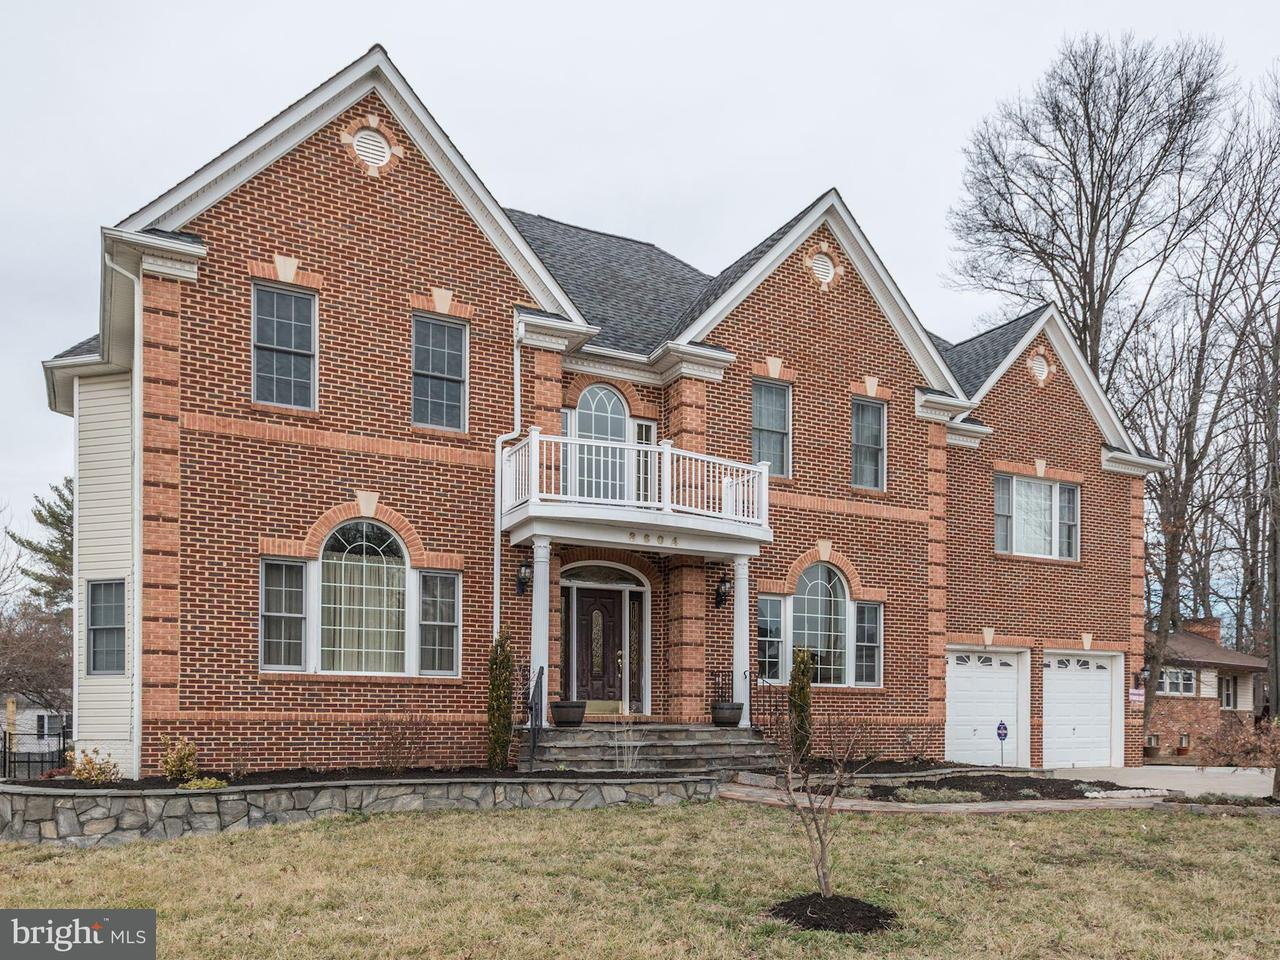 Single Family Home for Sale at 3604 Jermantown Road 3604 Jermantown Road Fairfax, Virginia 22030 United States